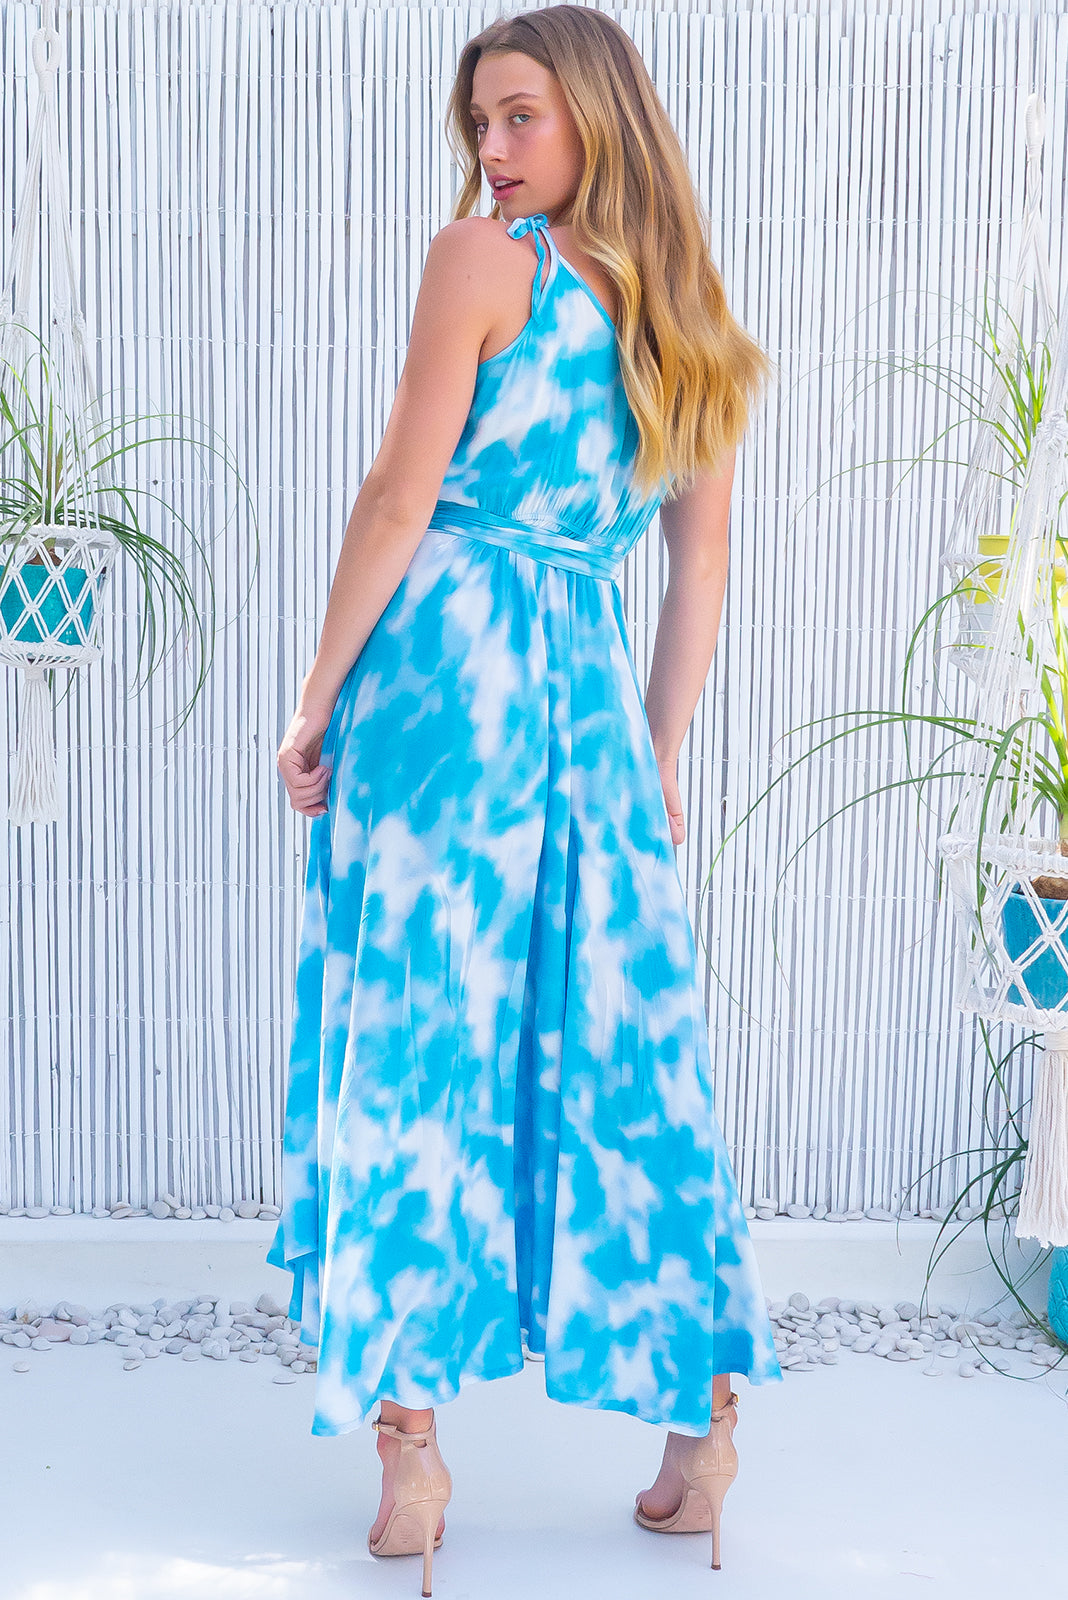 The Byron Blue Skies Maxi Wrap Dress is a true wrap-style dress featuring 100% viscose in blue and white tie dye and adjustable shoulder ties.